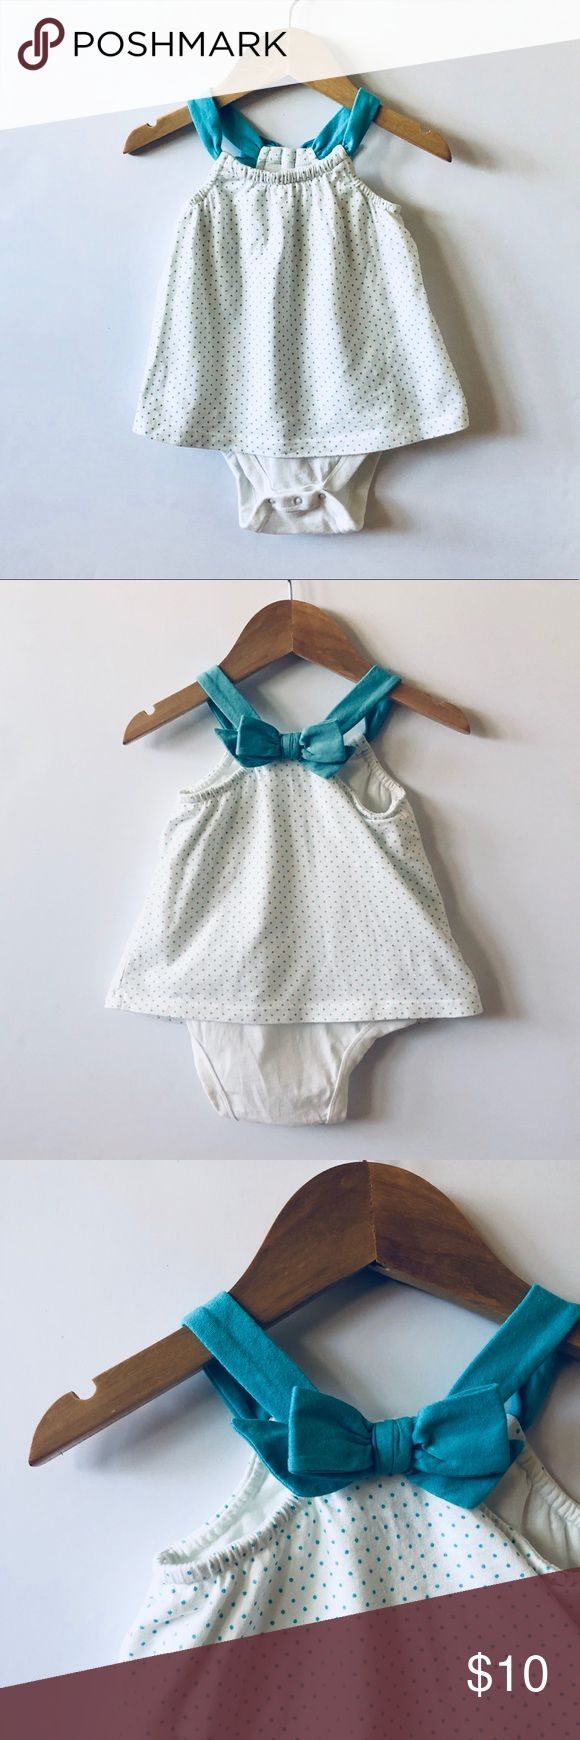 Baby Gap   Onesie bow back tank top 100% very soft cotton. Faux bow in back.   Excellent condition. Smoke free home.   ✨ships next business day✨ GAP Shirts & Tops #babytanktops